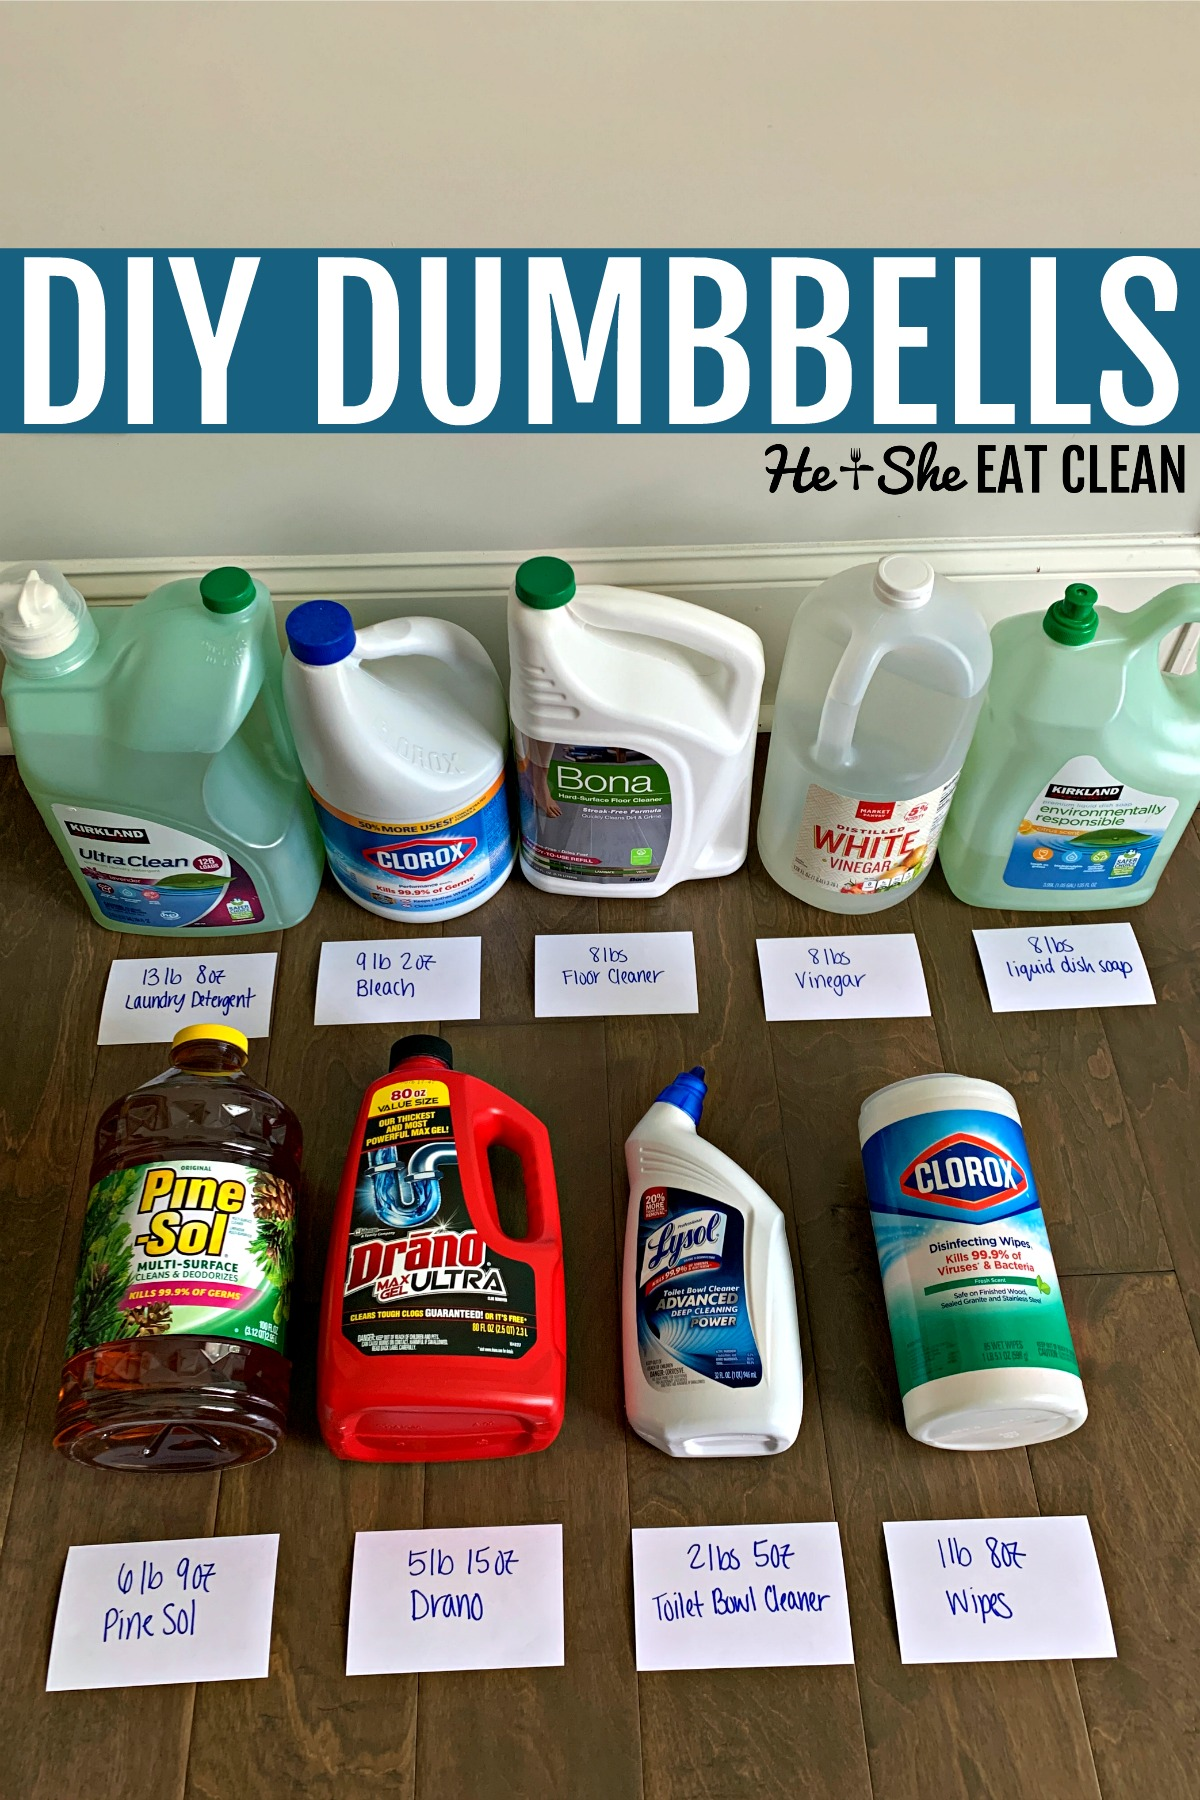 cleaning products with their weight listed for DIY dumbbells